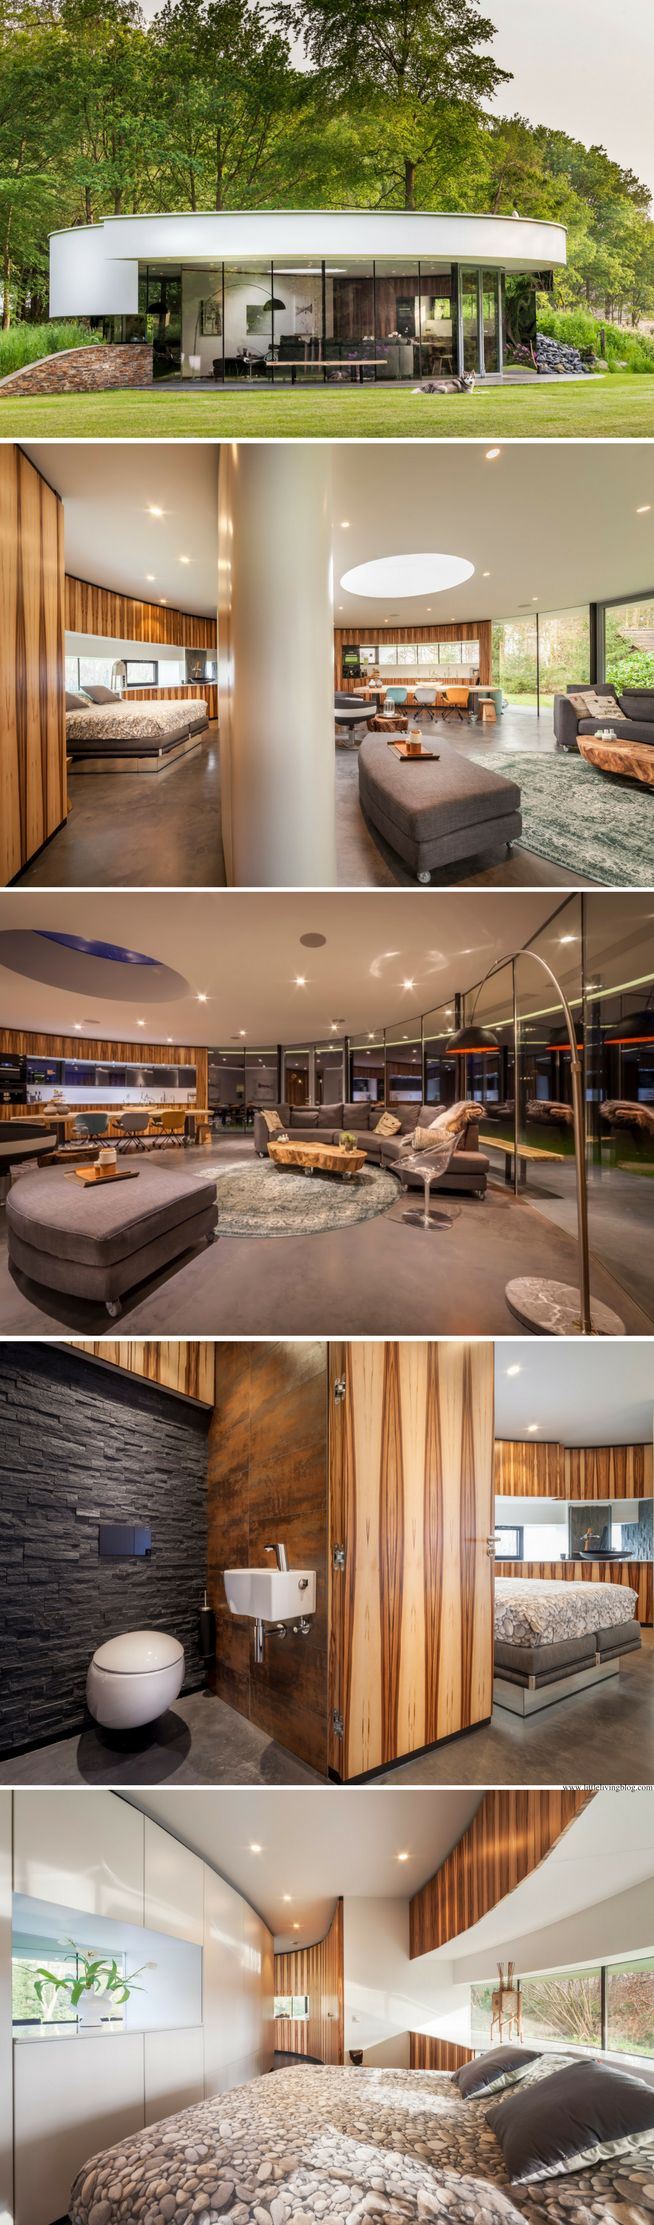 The 360 Villa: a 915 sq ft home in the Netherlands